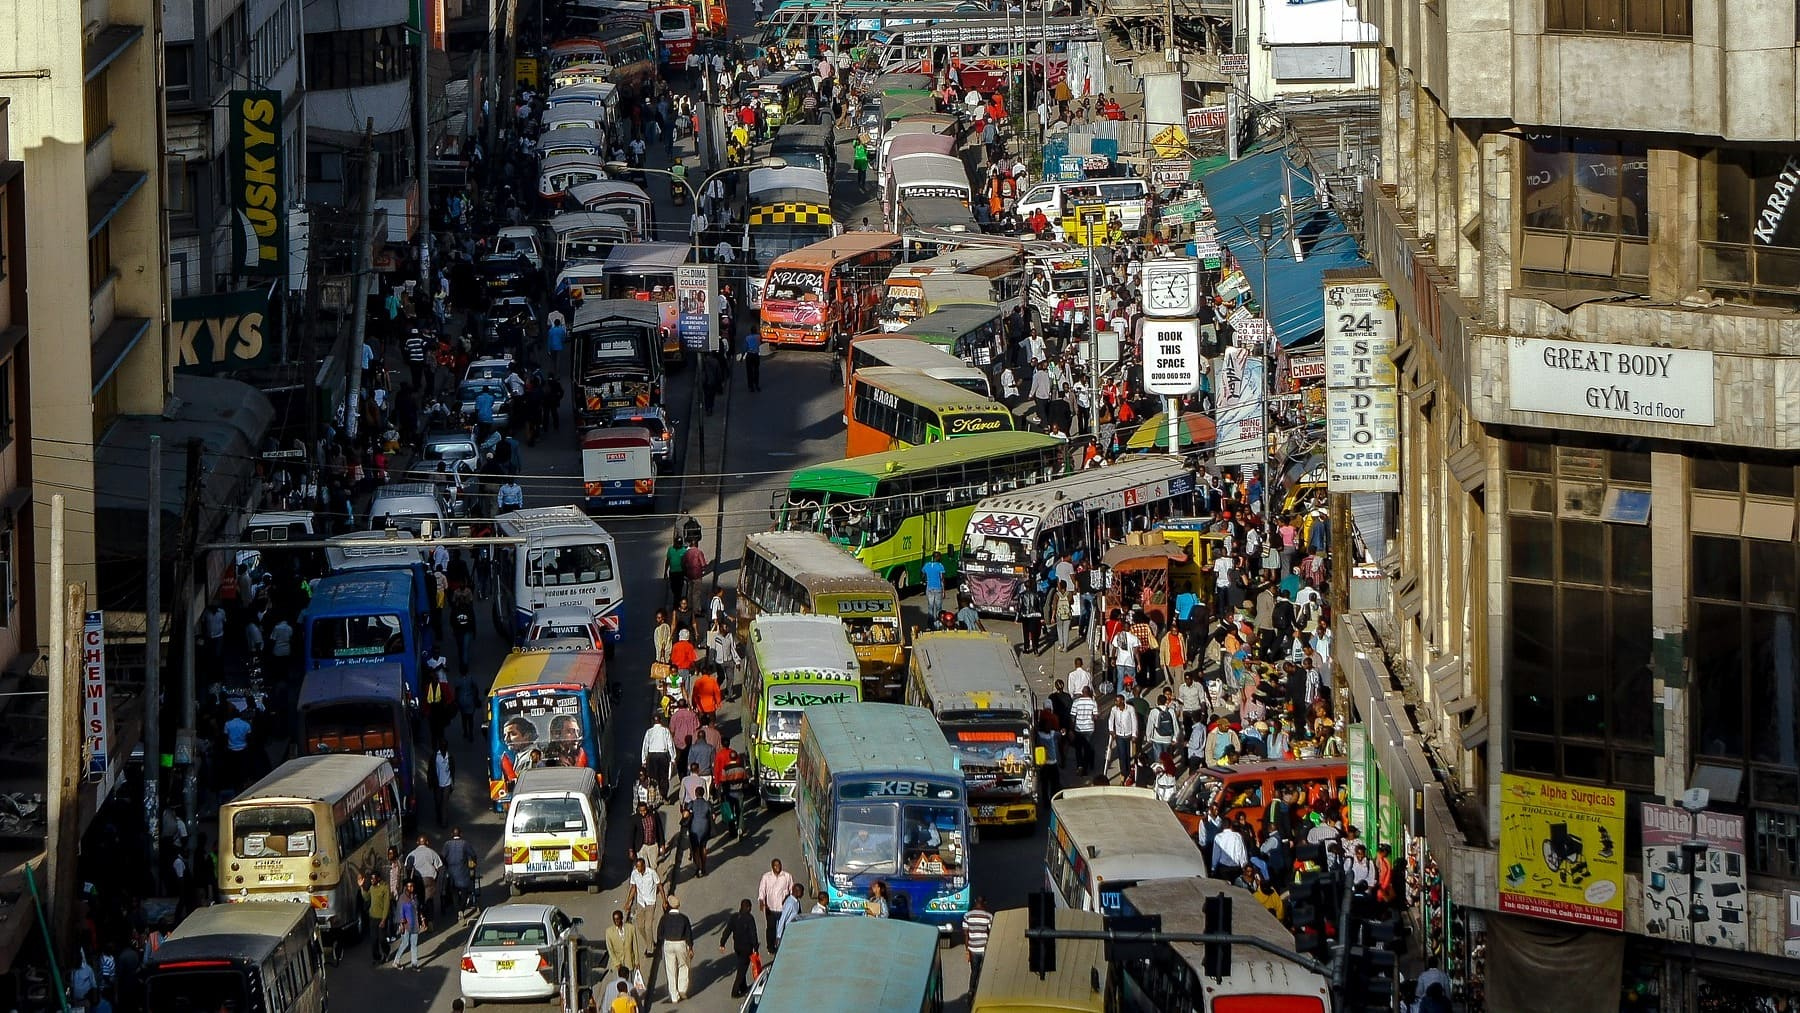 The 5 most populous cities in Africa in 2021